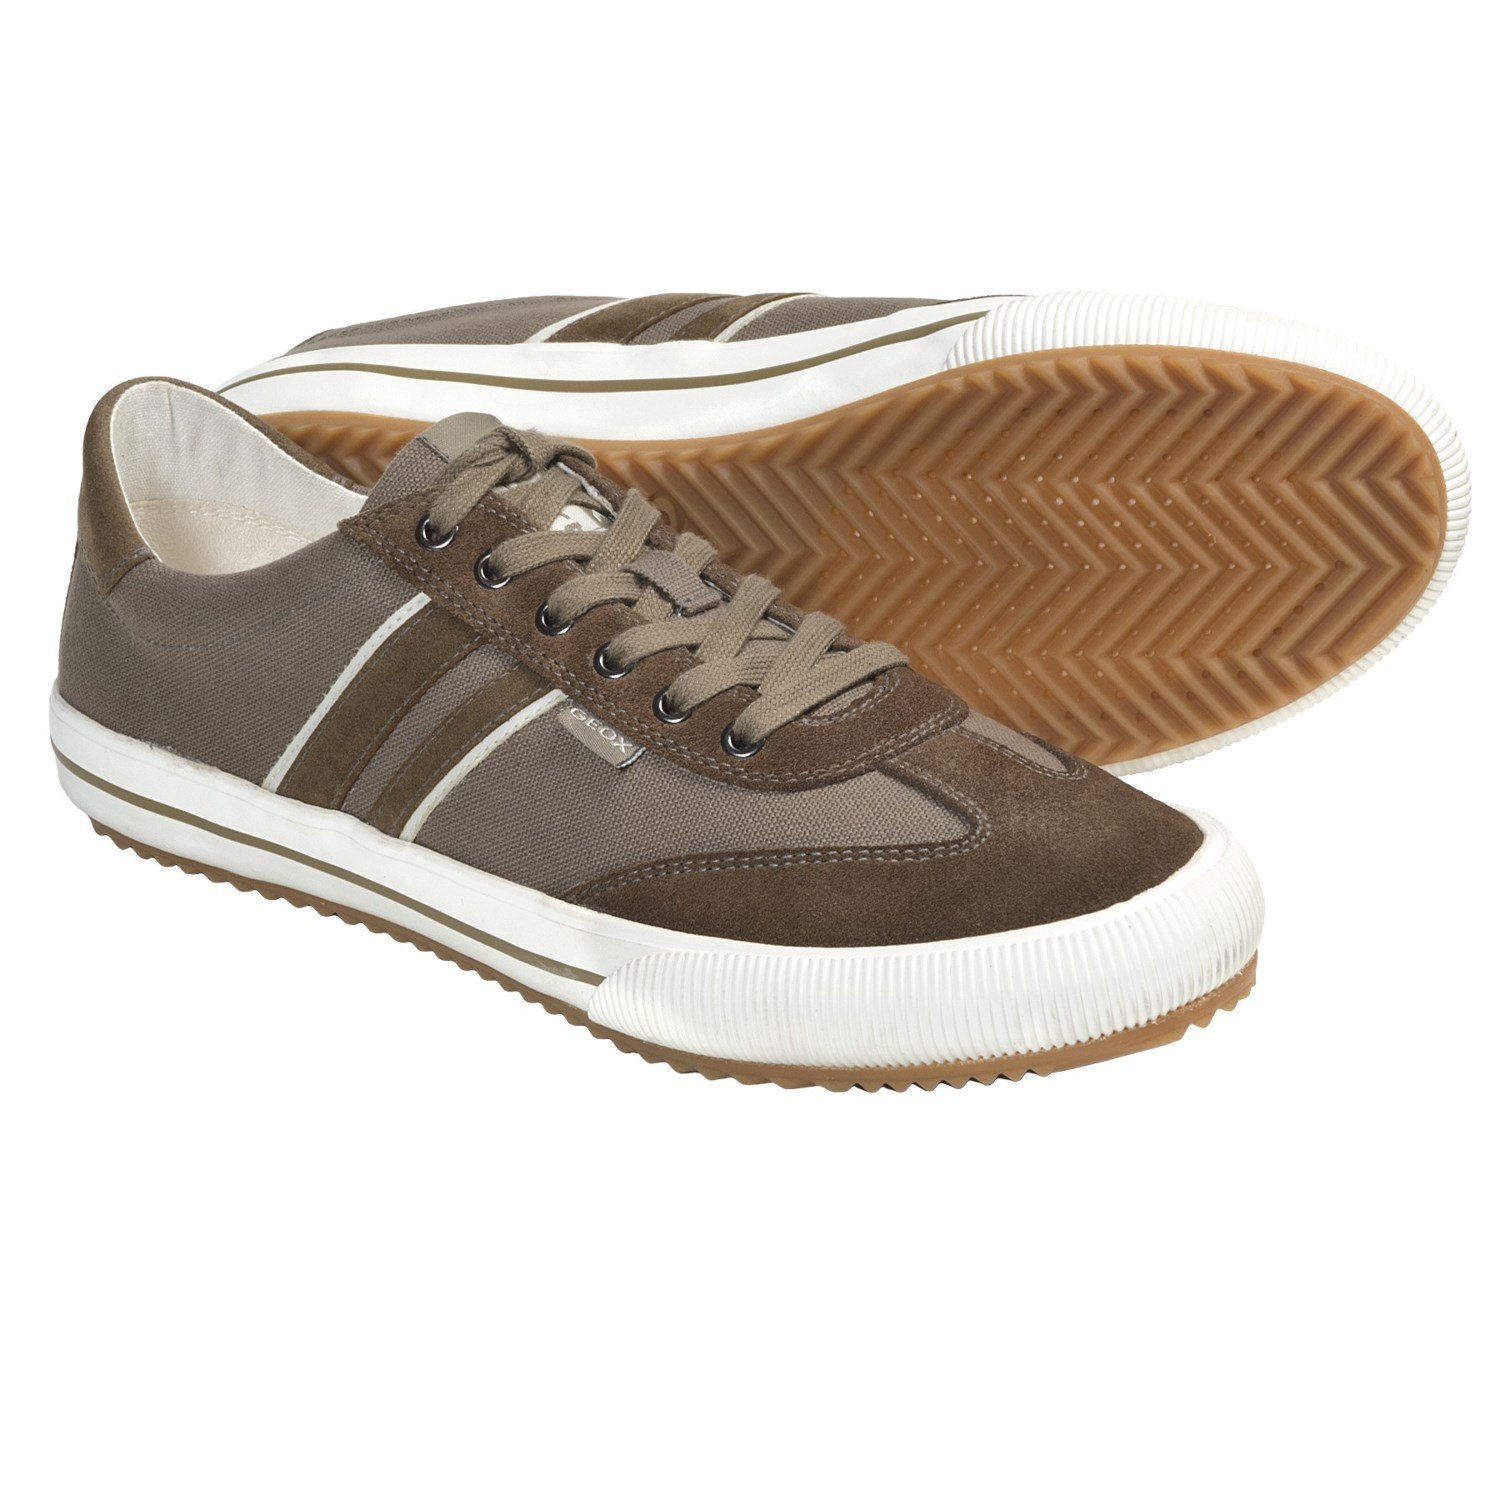 Geox Pit Shoes (For Men) 5596K